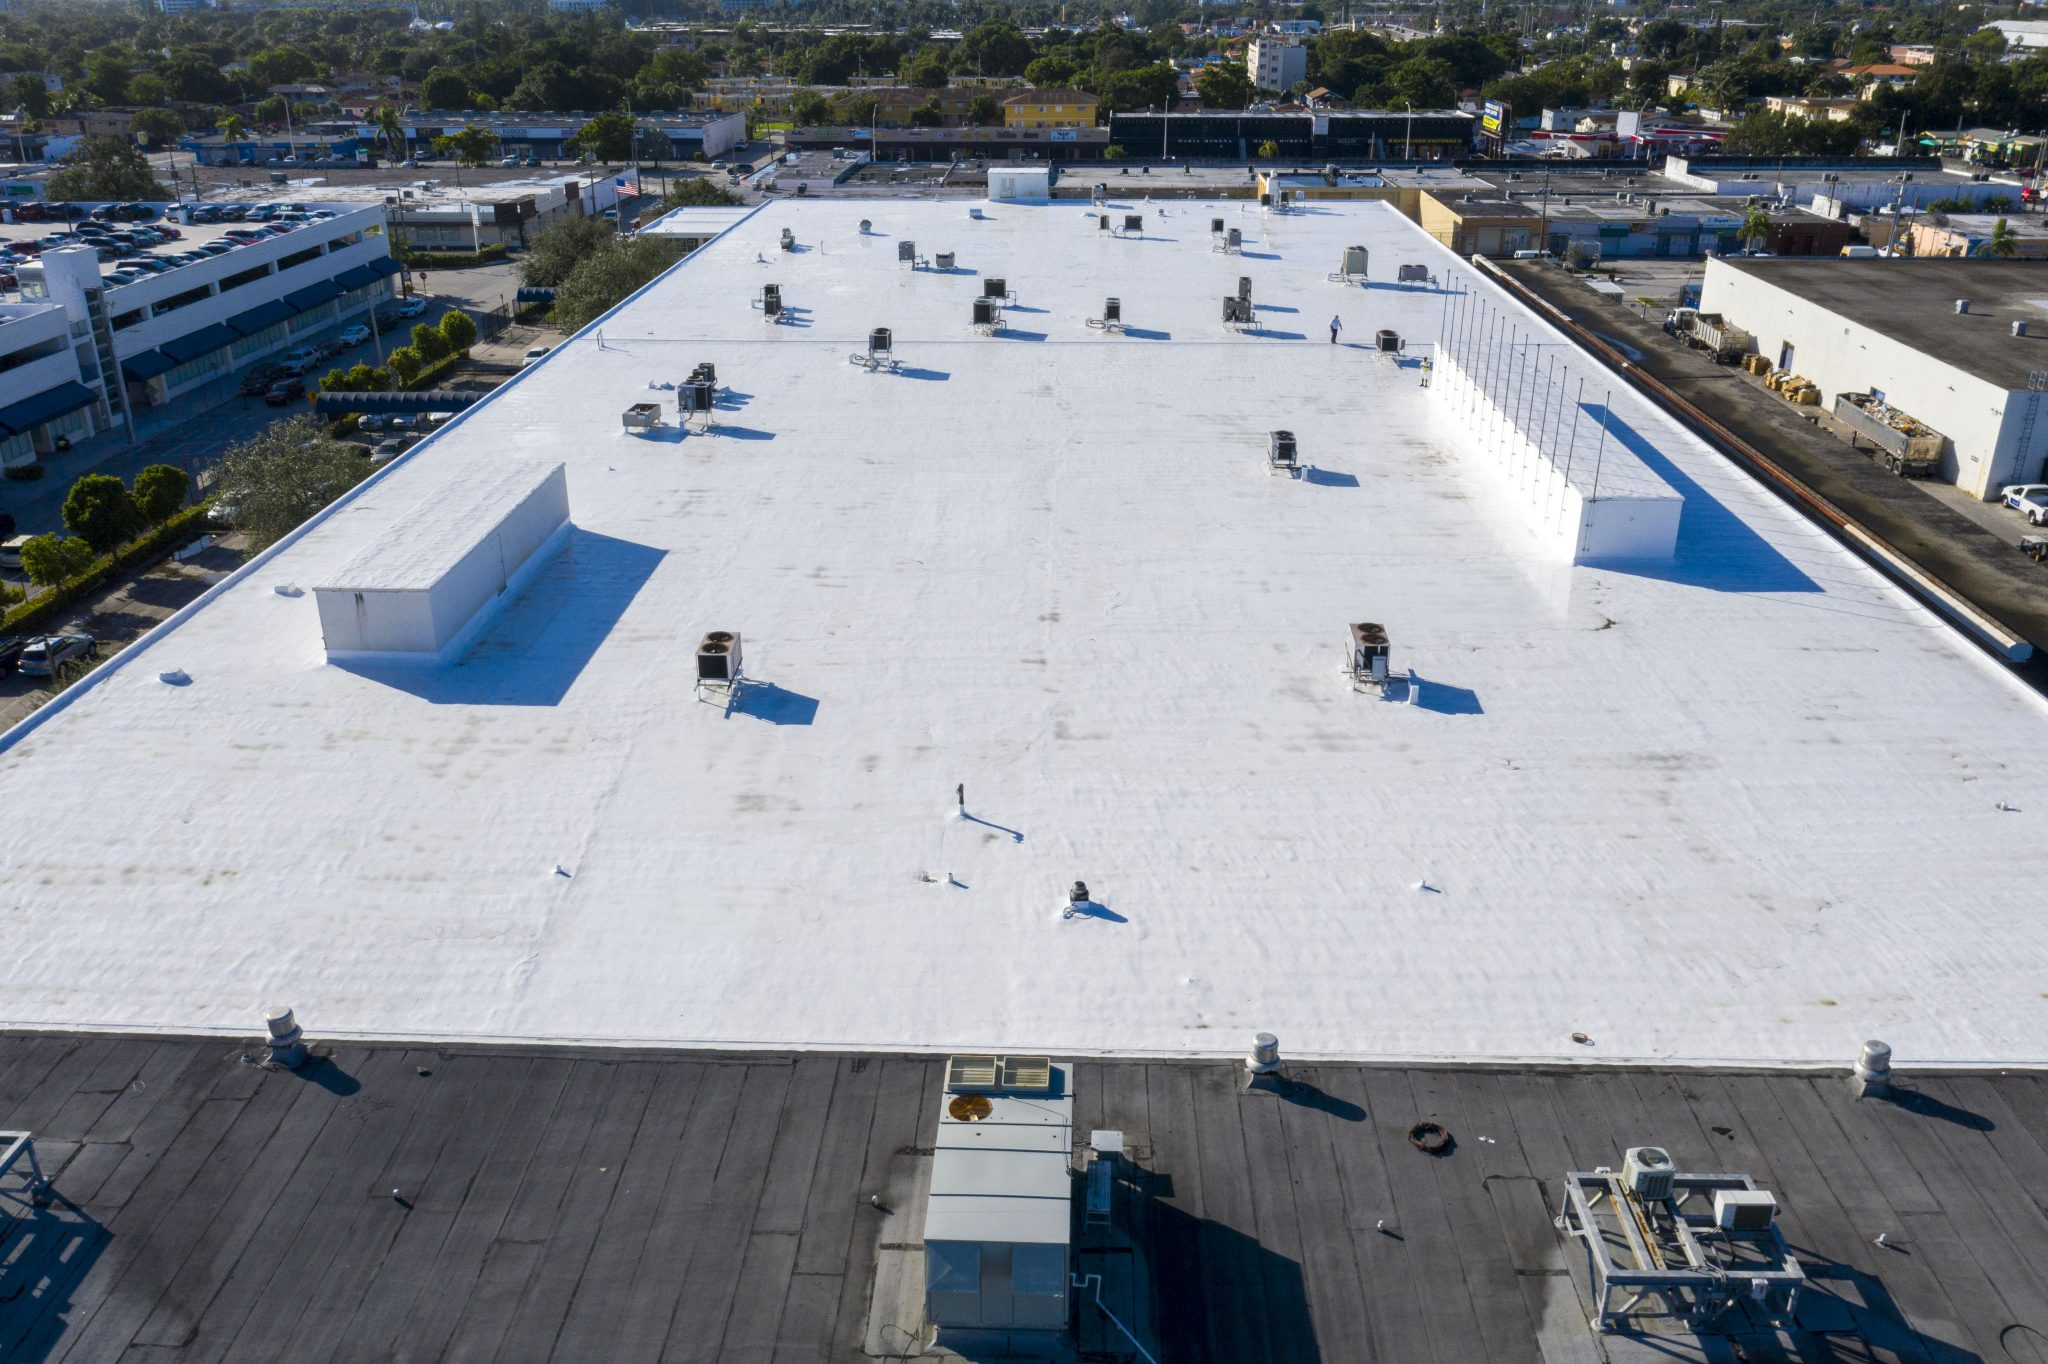 New Roofing in 2021